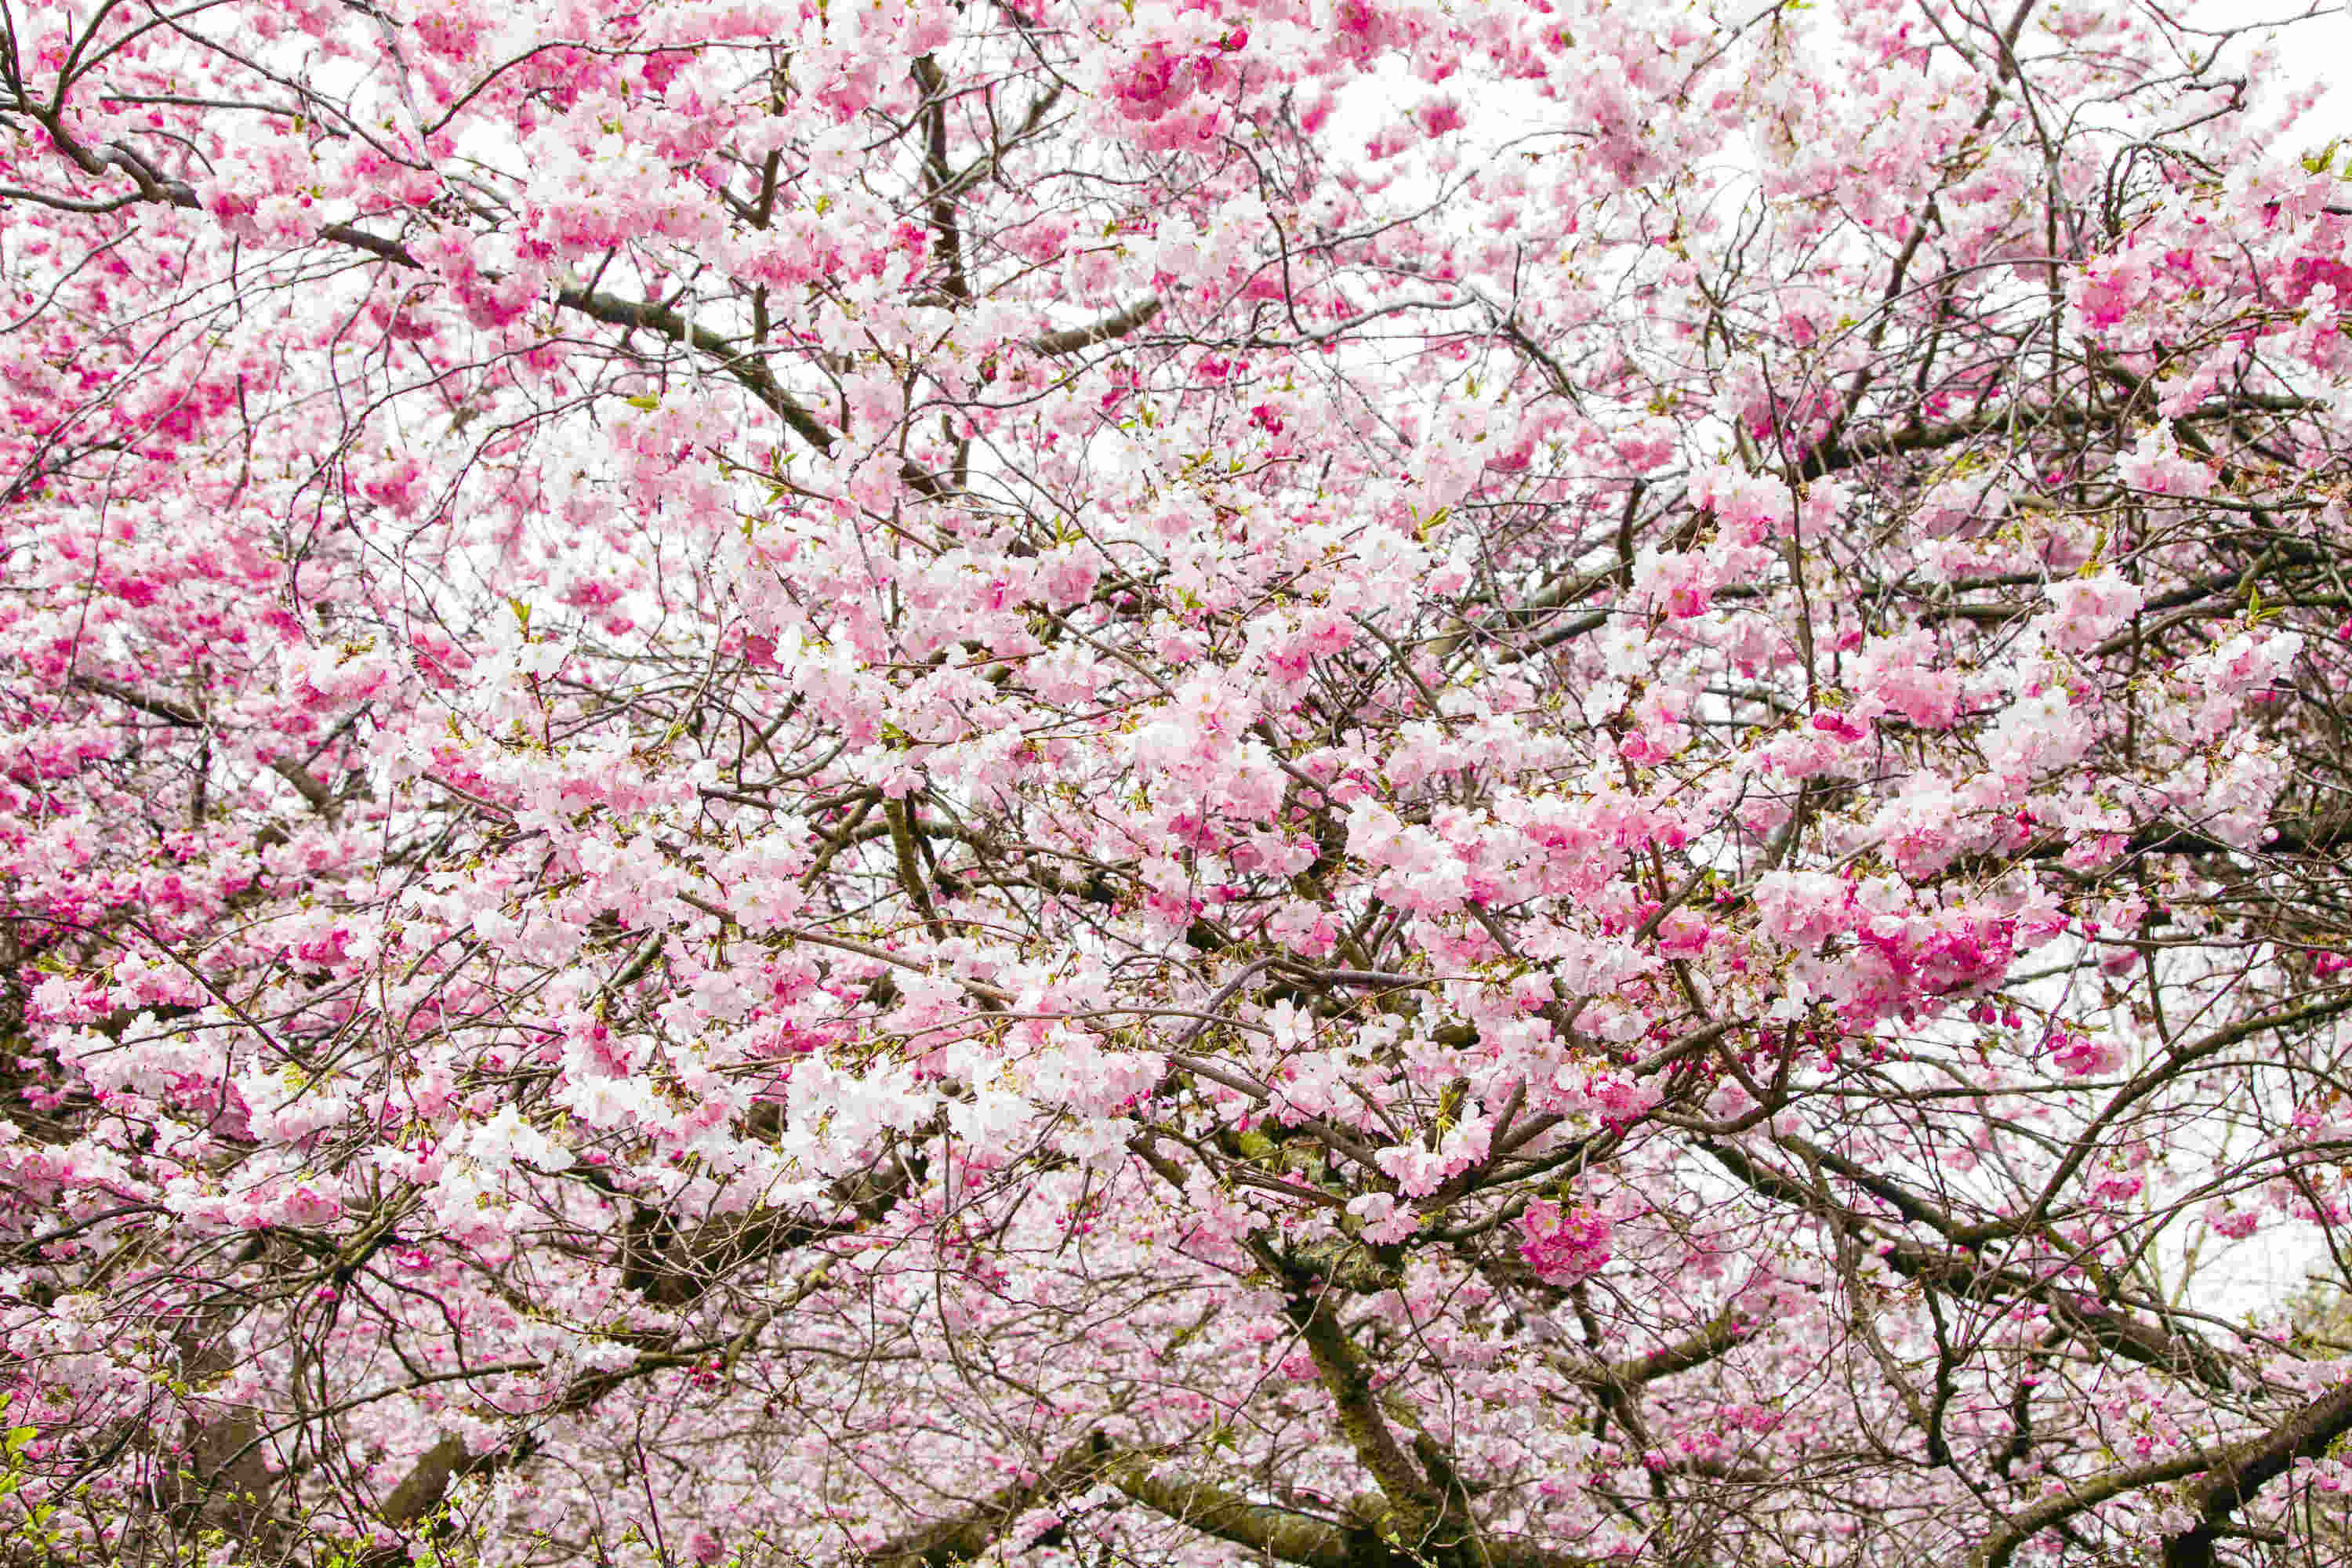 The best places to see cherry blossom in London